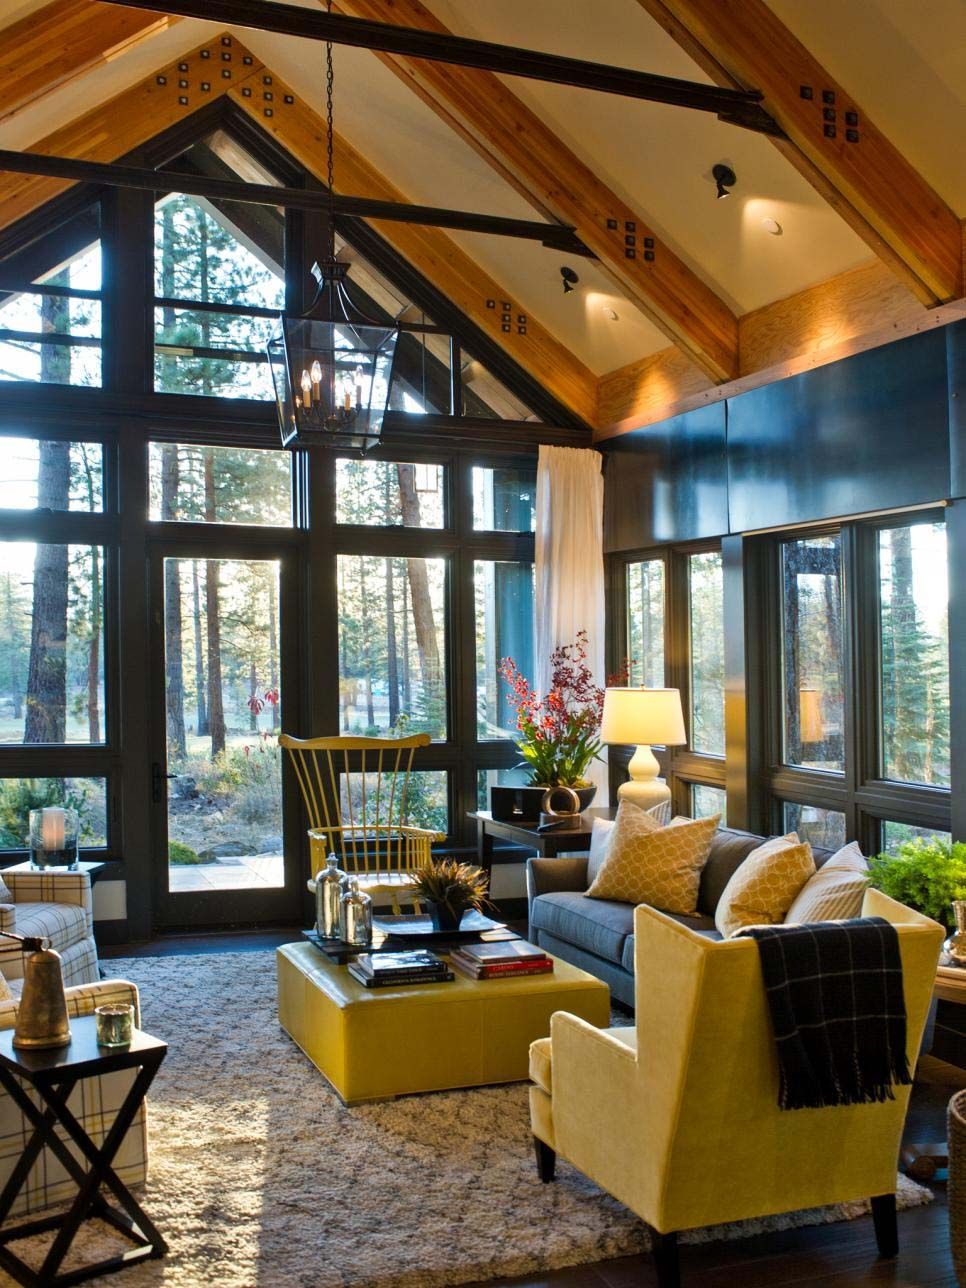 Cool Sunken Living Room Ideas For Your Dreamed House: Rustic Mountain House With A Modern Twist In Truckee, California